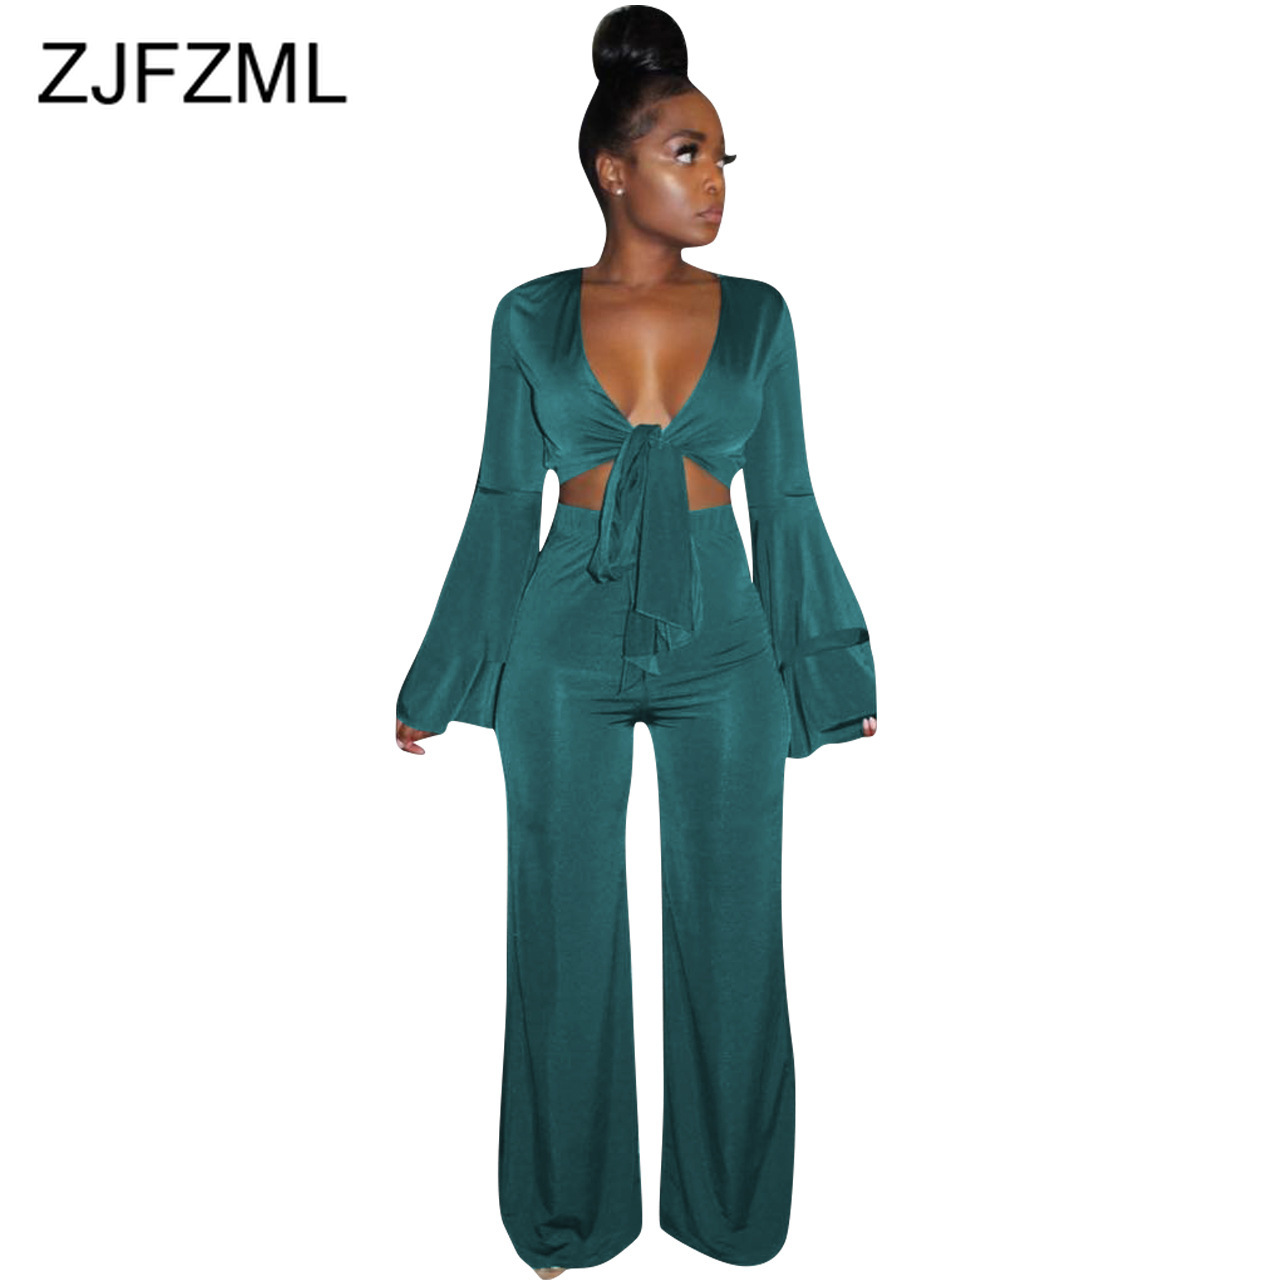 Sexy Two Piece Tracksuit Women Clothes Deep V Neck Flare Sleeve Crop Top+Wide Leg Pants Sweatsuits Vintage 2 Piece Club Outfit